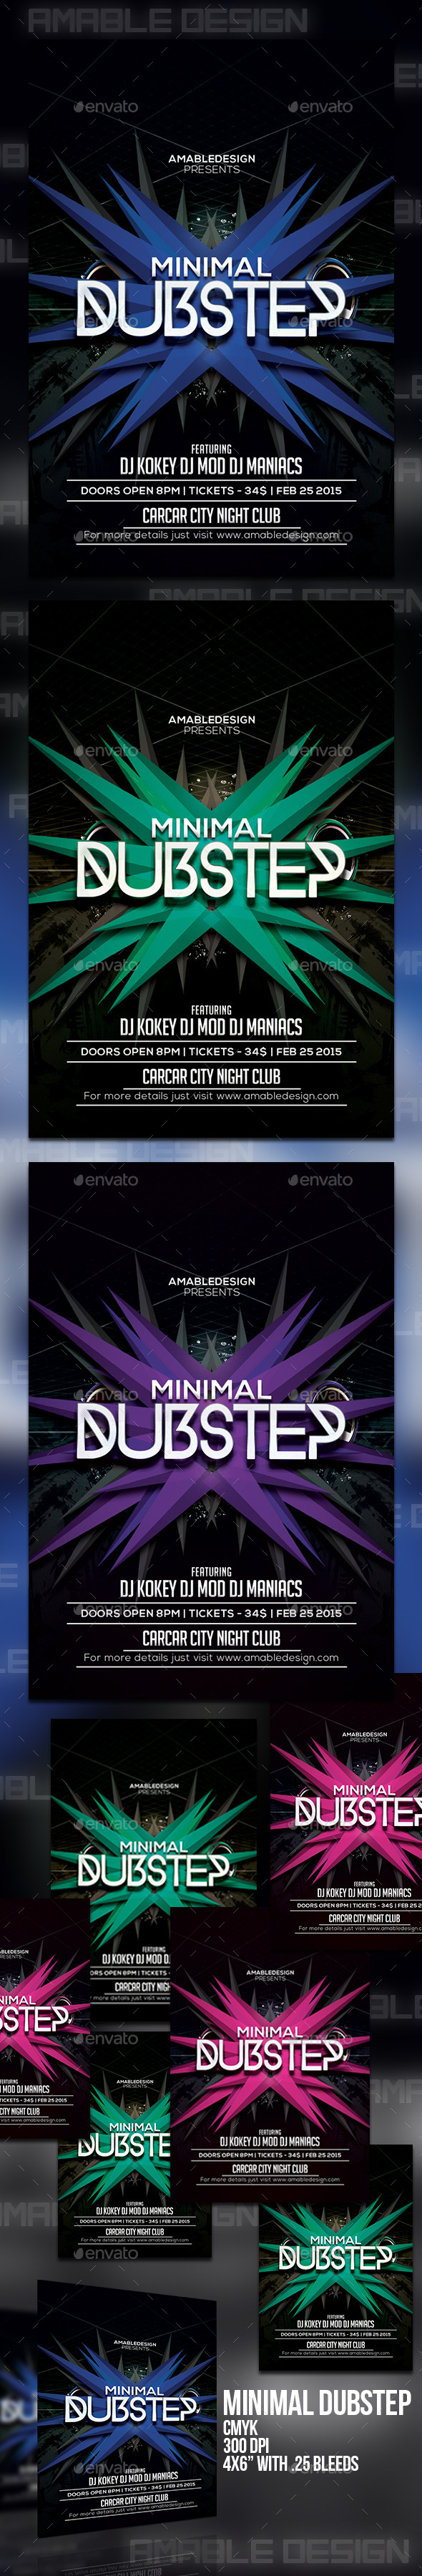 GraphicRiver Minimal Dubstep Flyer 11206335